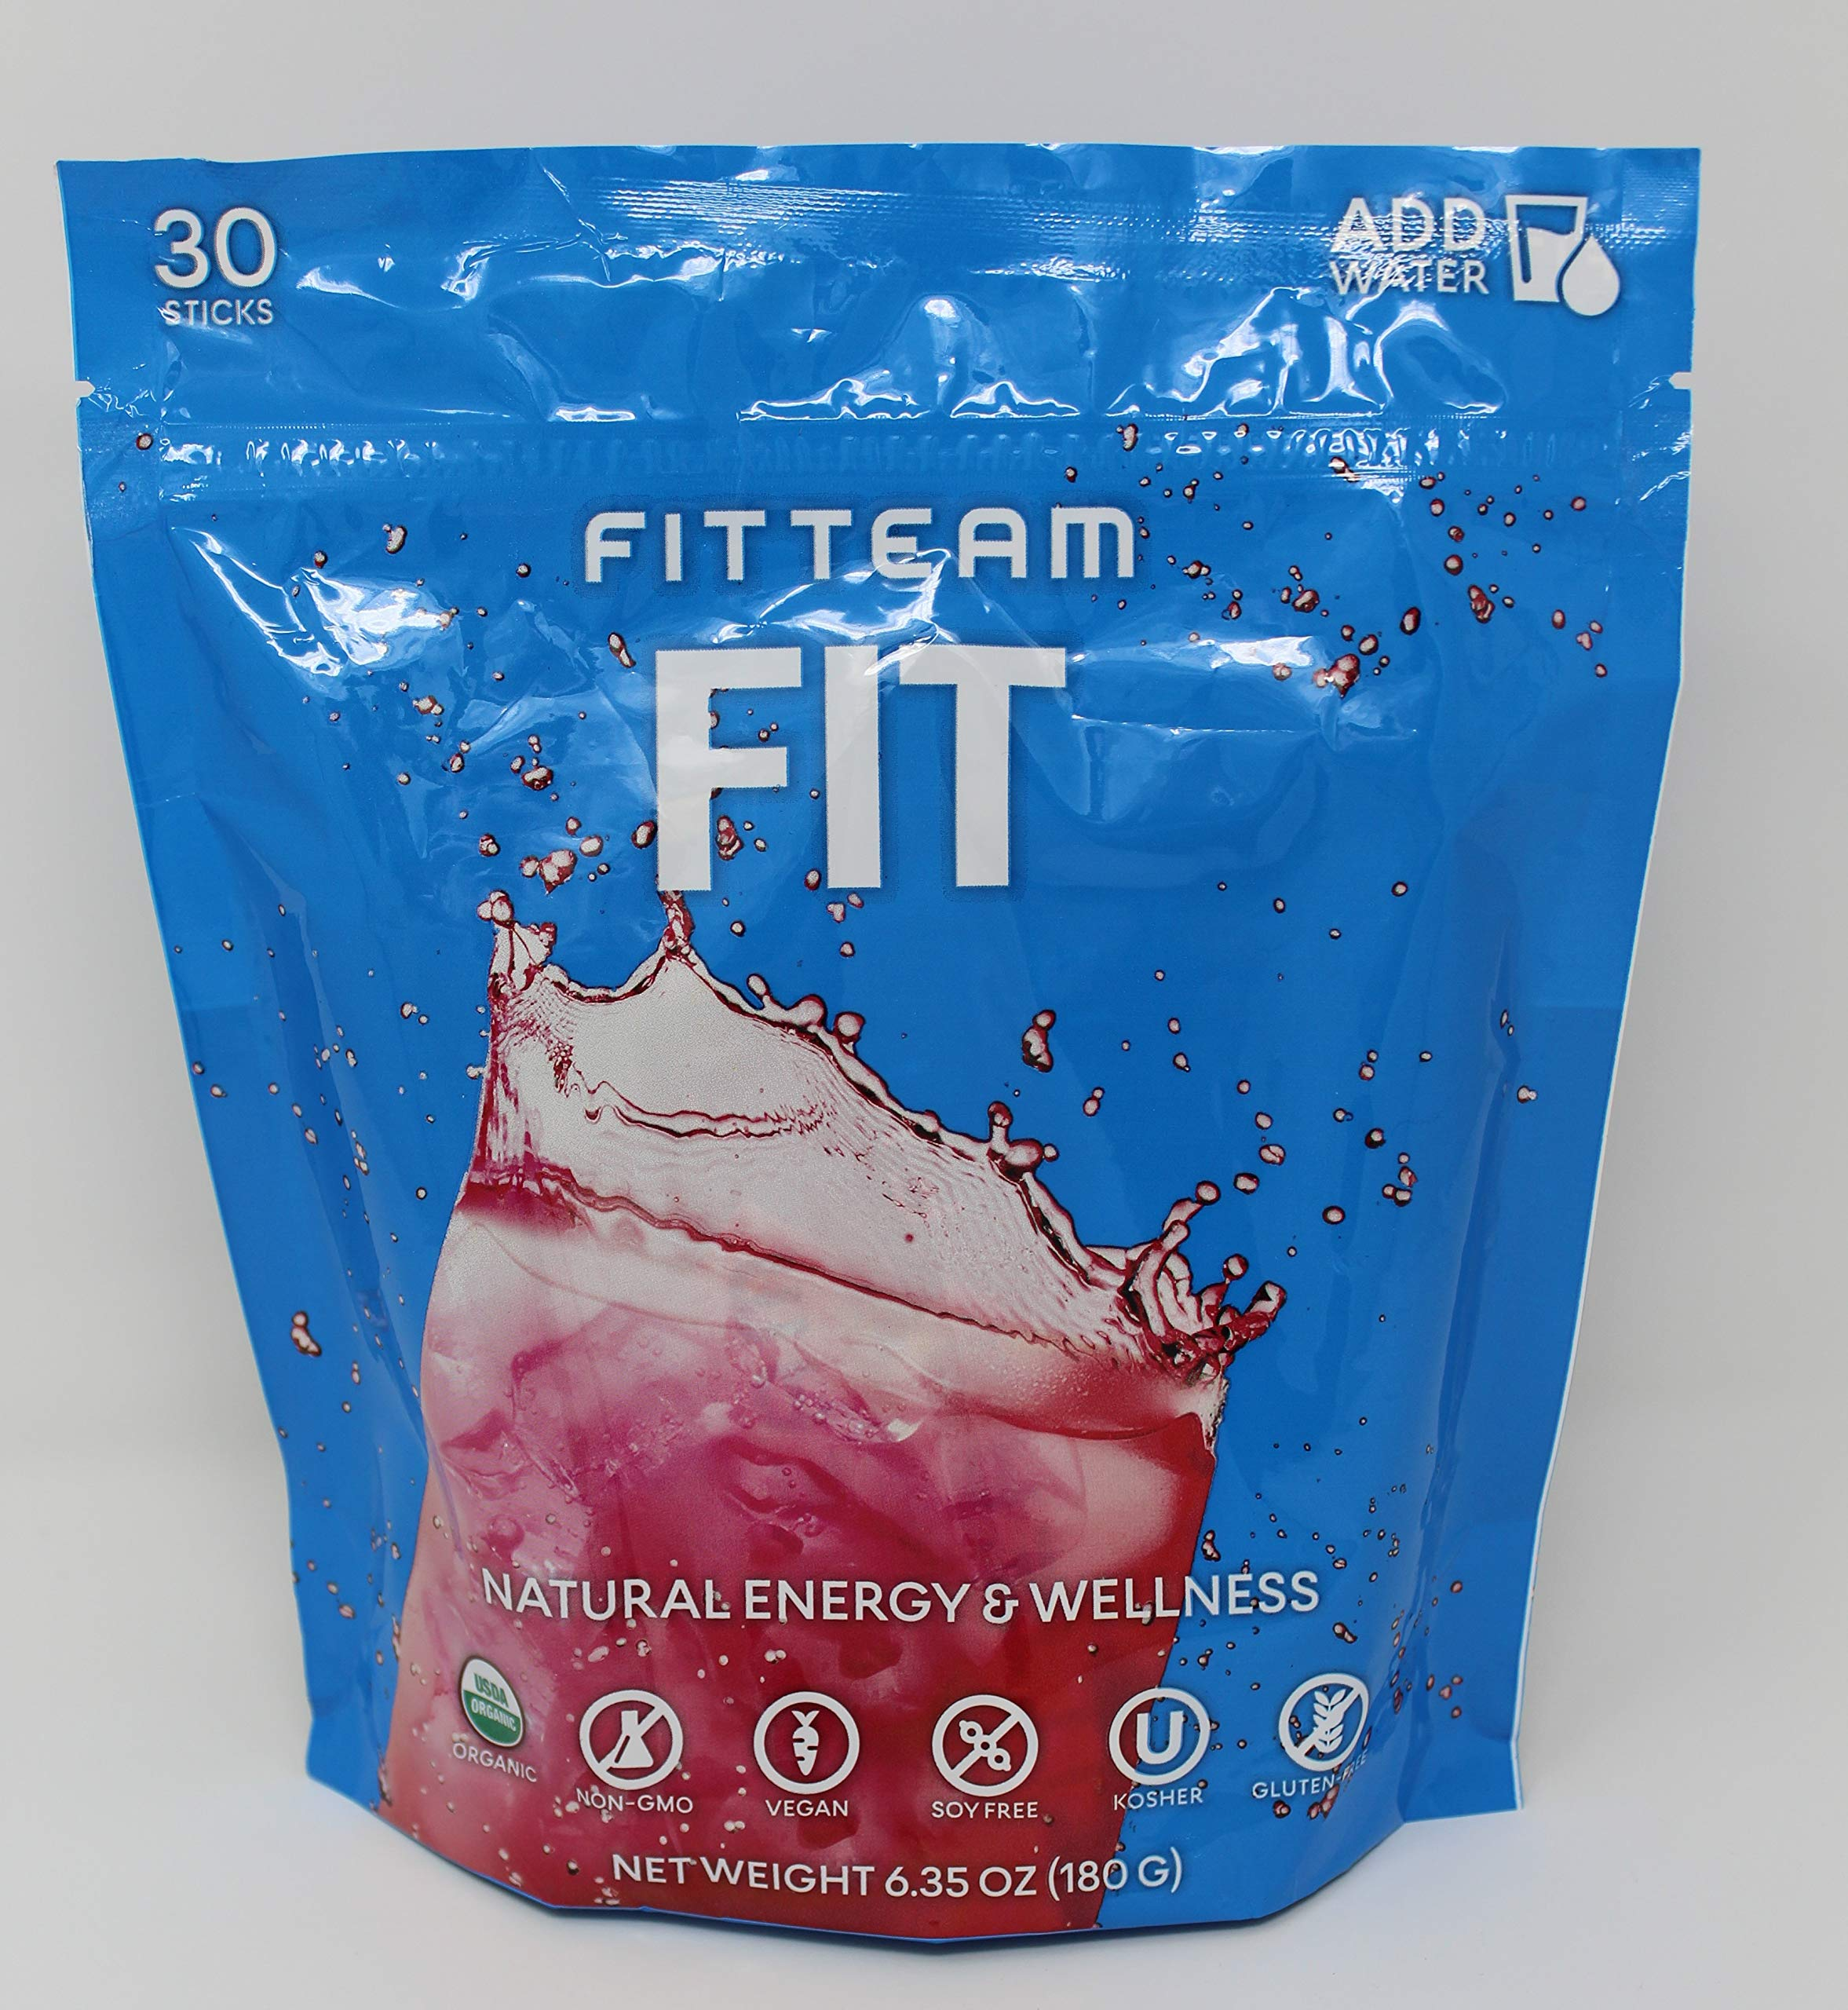 Energy Weight Loss Drink Fitteam Fit Sticks,Organic, GF, DF Vegan - 30 Sticks by FITTEAM FIT